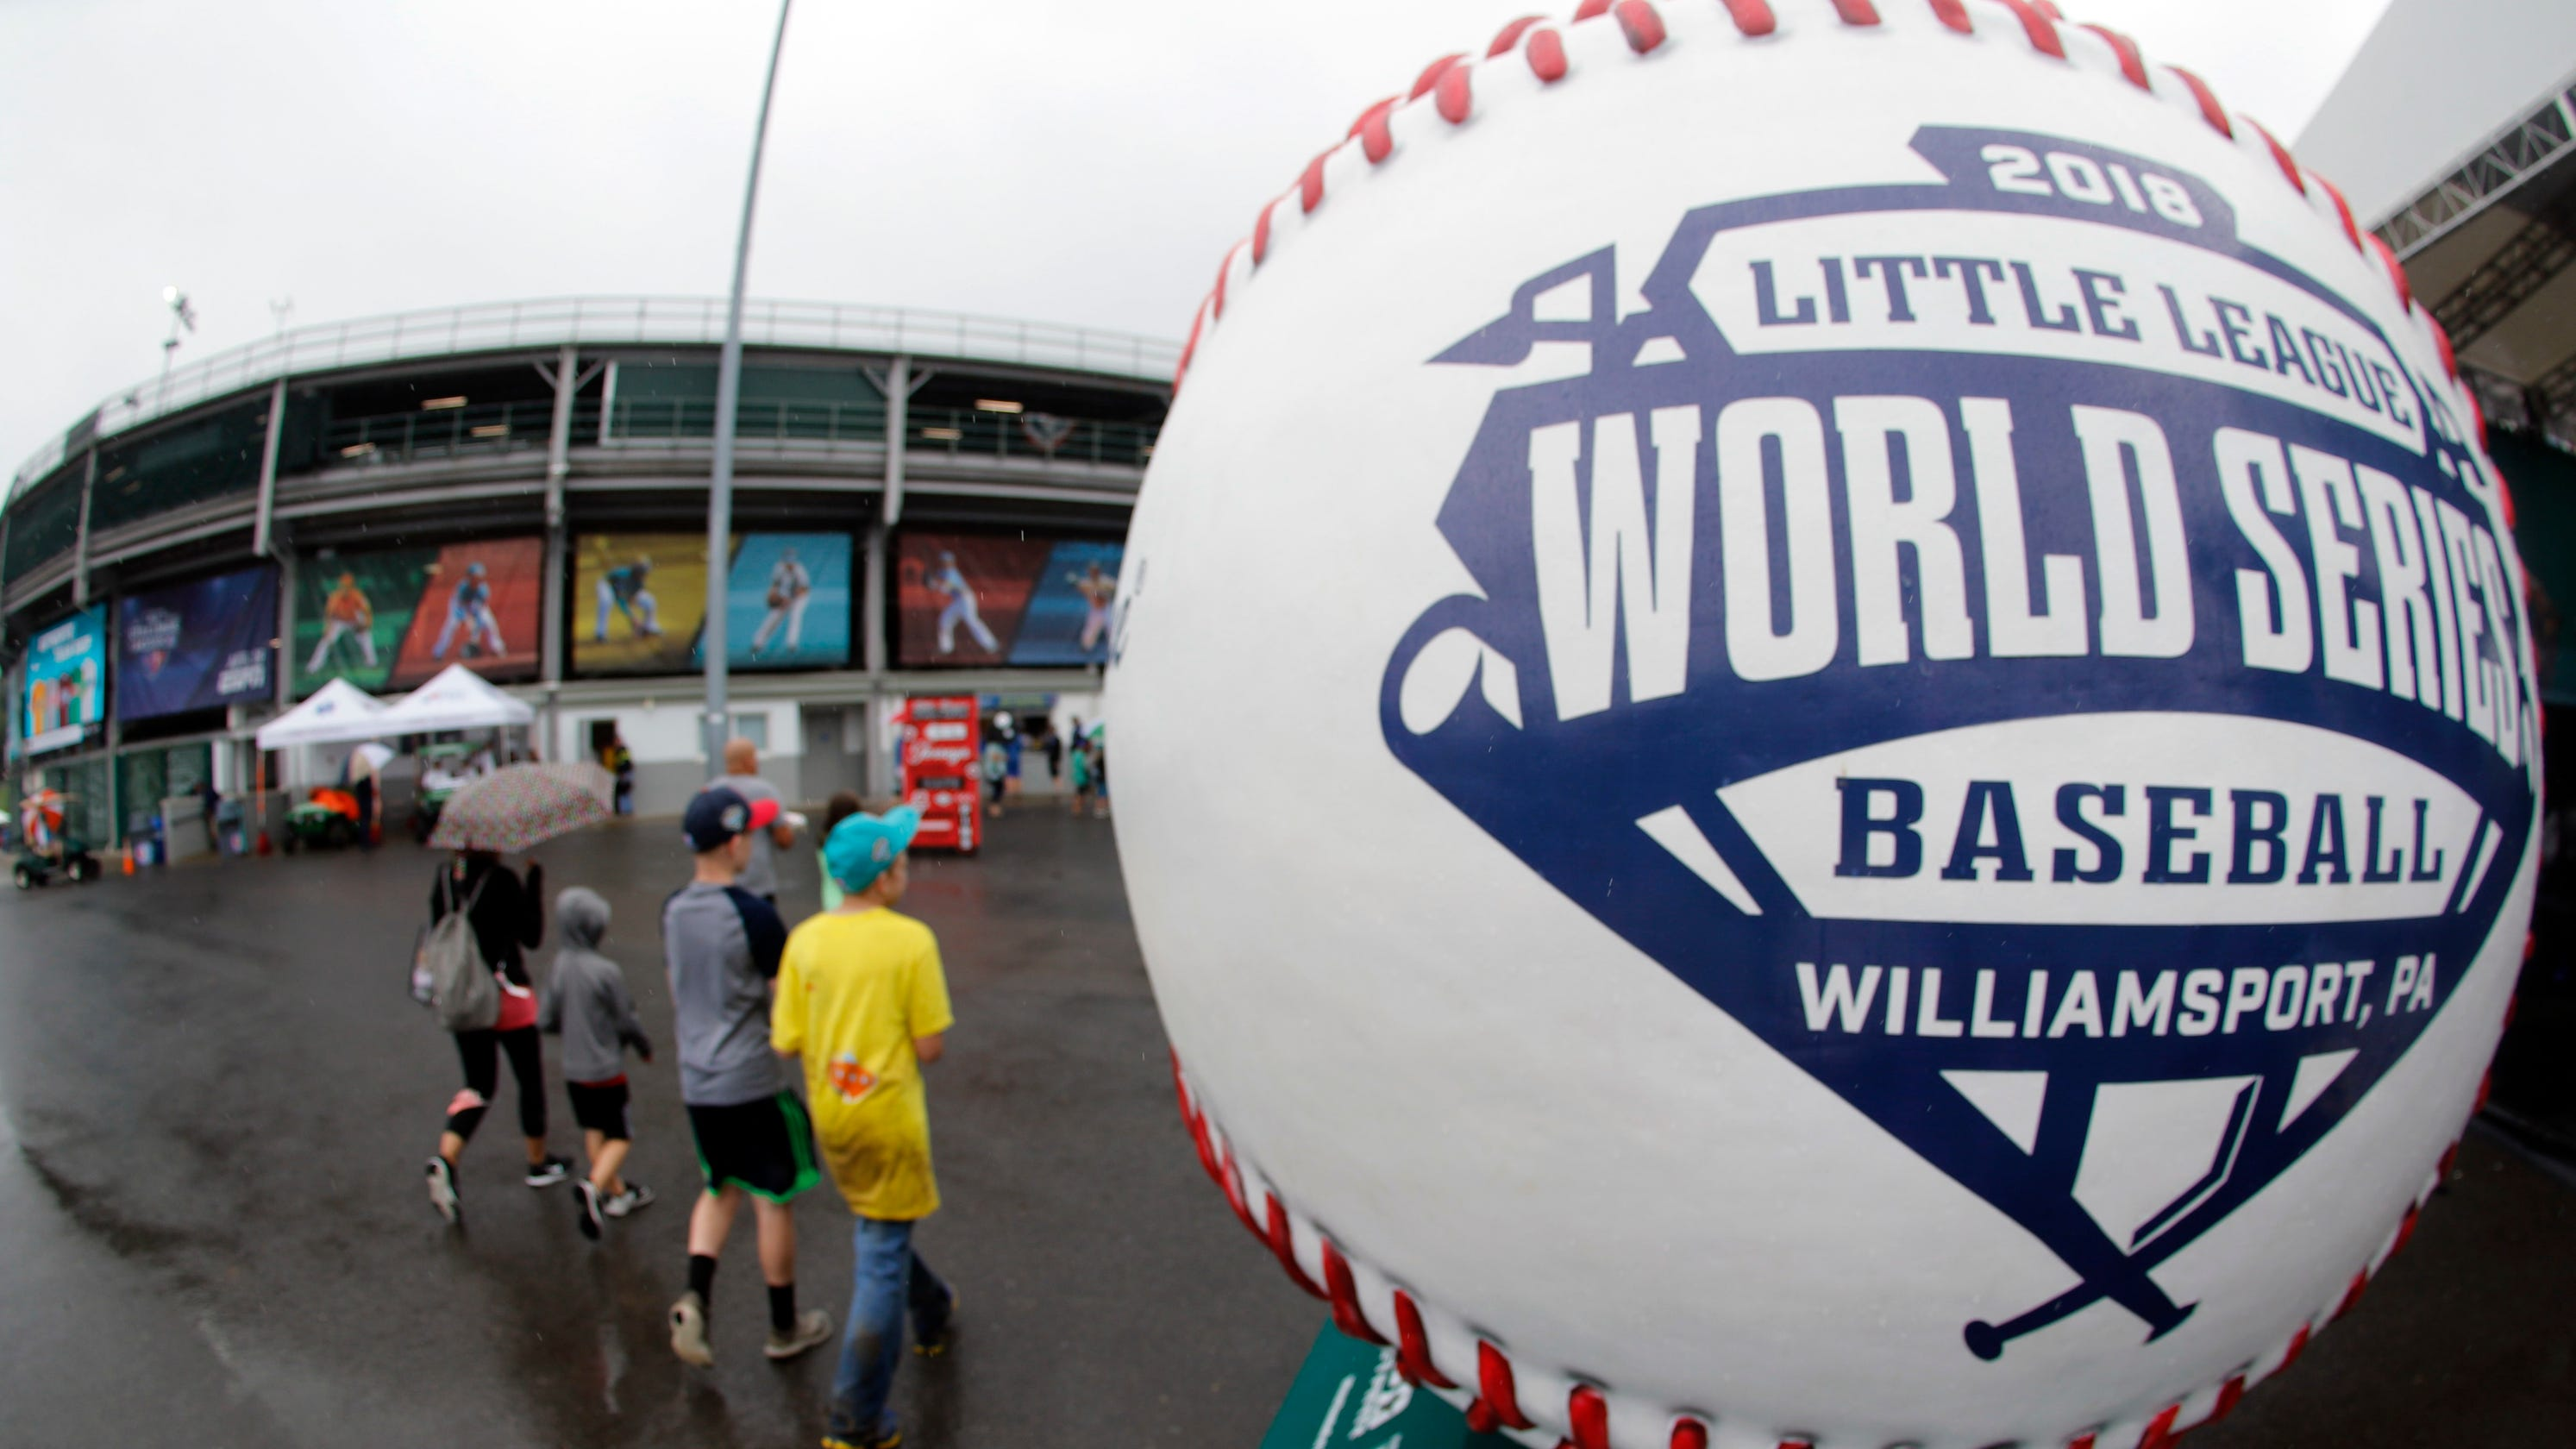 Little League World Series 2019: Meet the 16 teams vying for